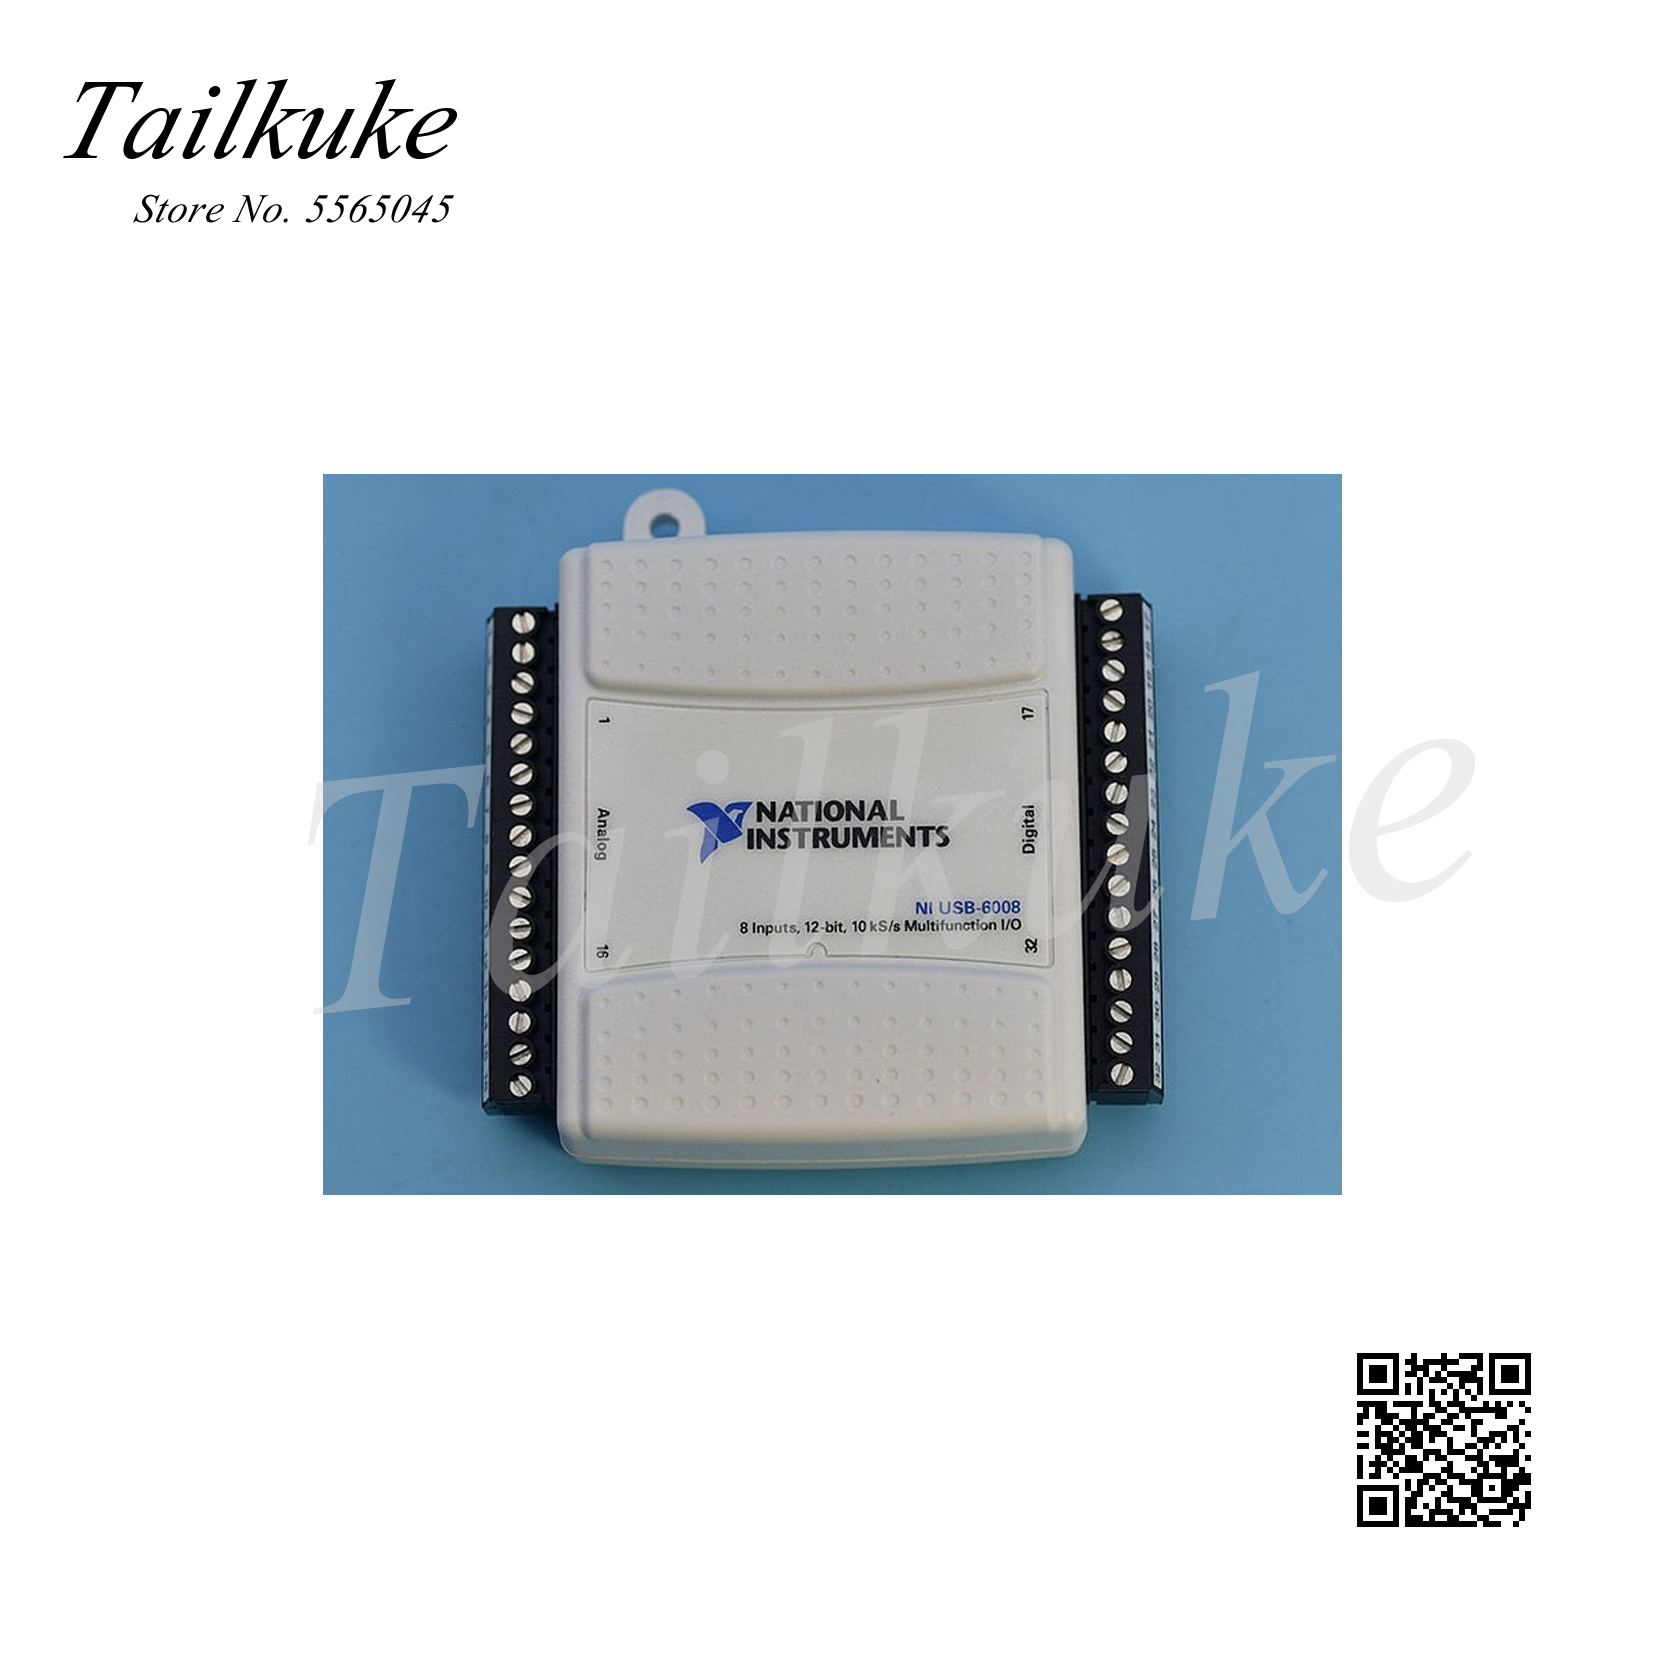 Original NI USB-6008 Data Acquisition Card Multifunction DAQ 779051-01